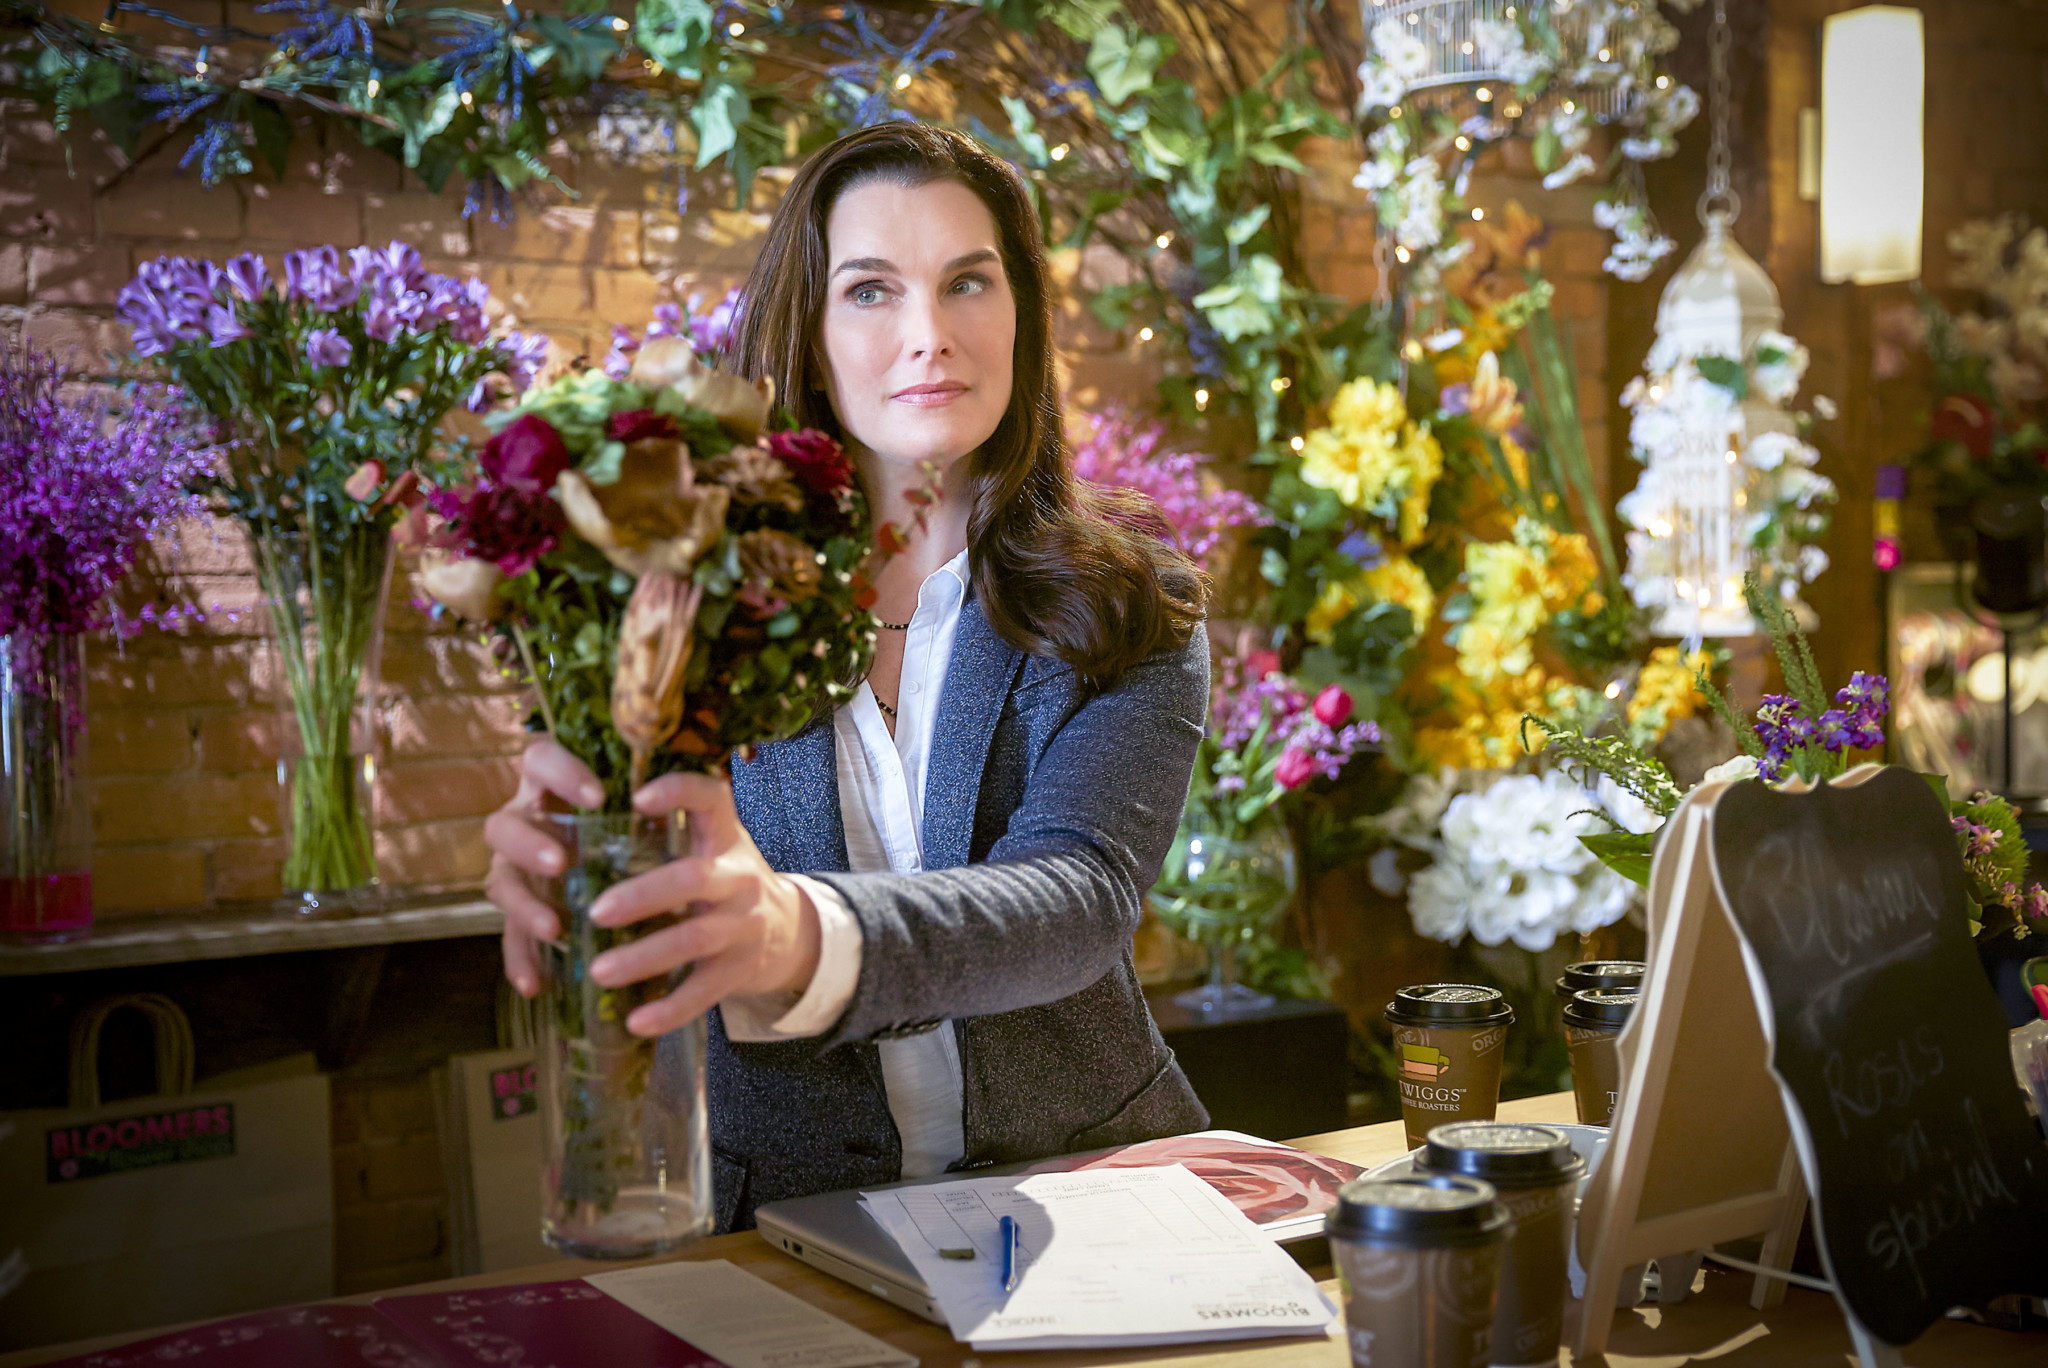 Flower Shop Mystery, Brooke Shields